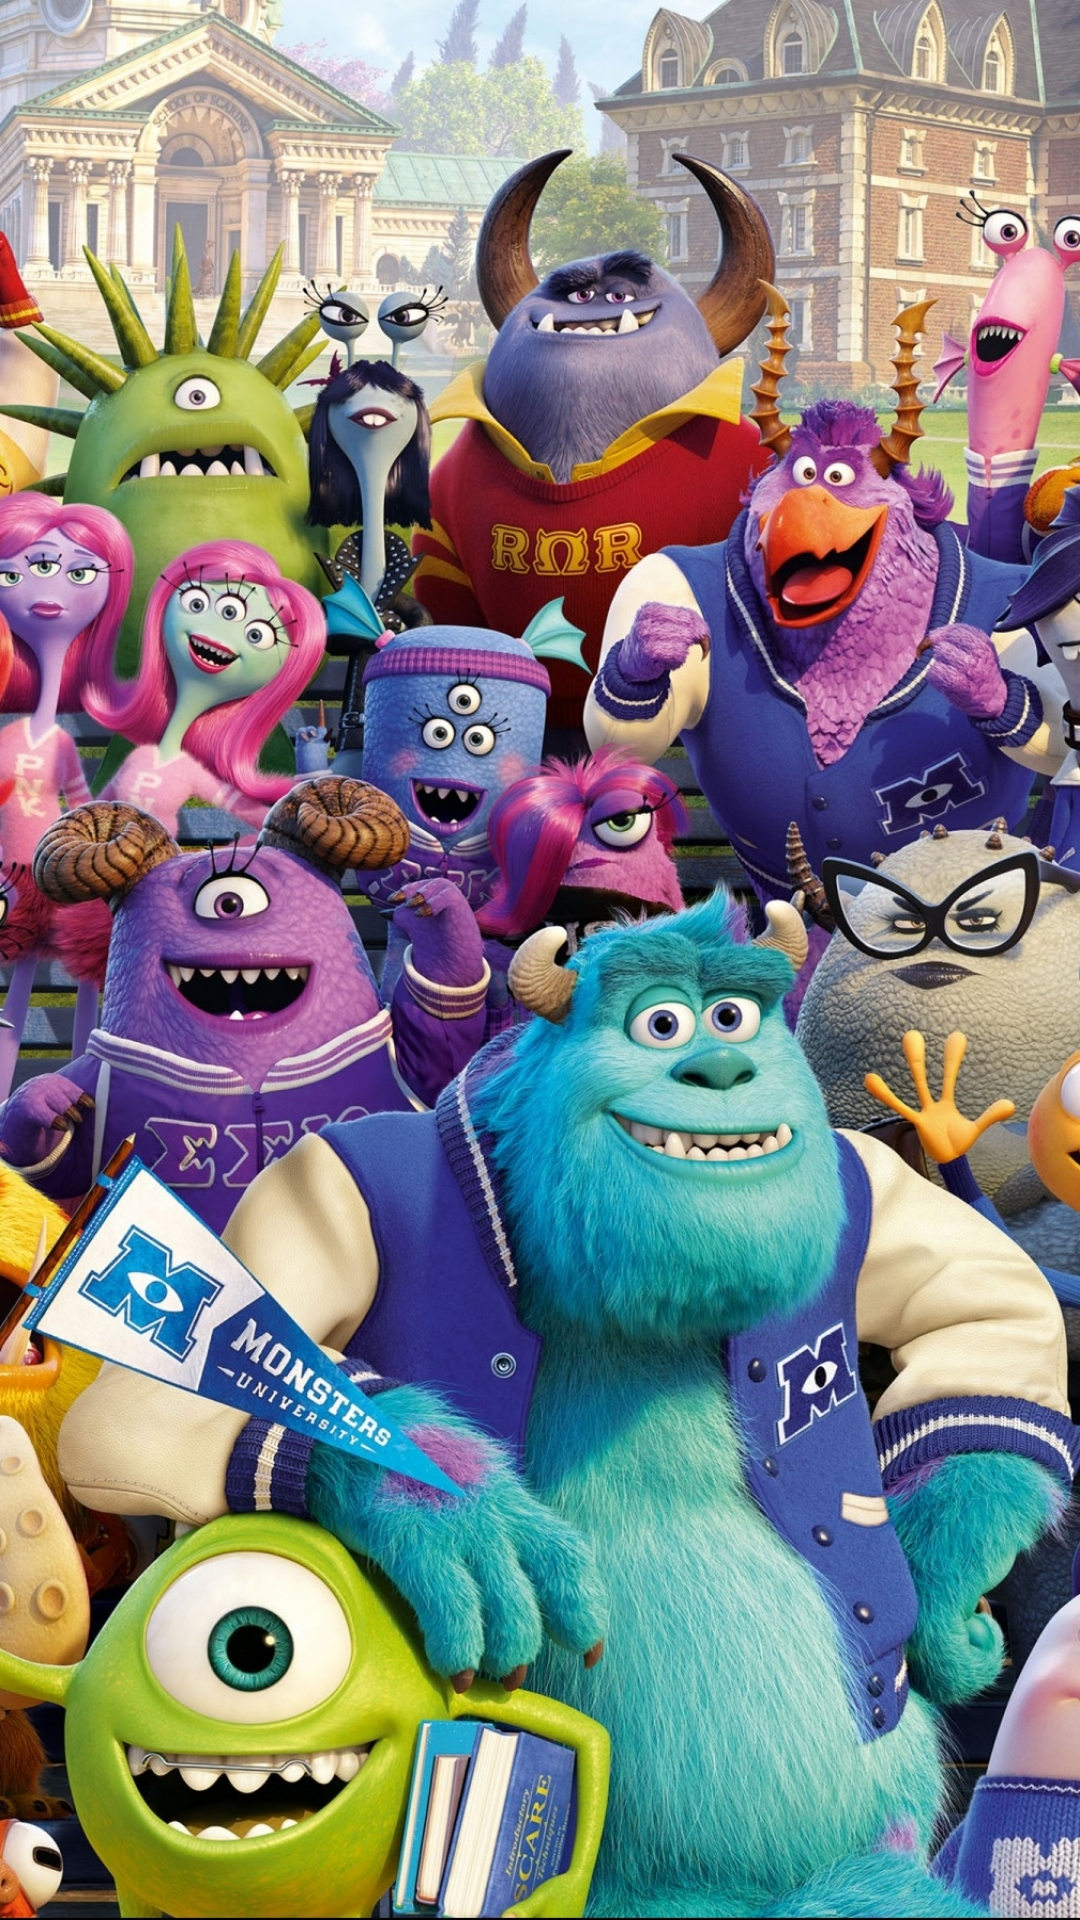 Wallpaper iphone monster university - Wallpaper 385613